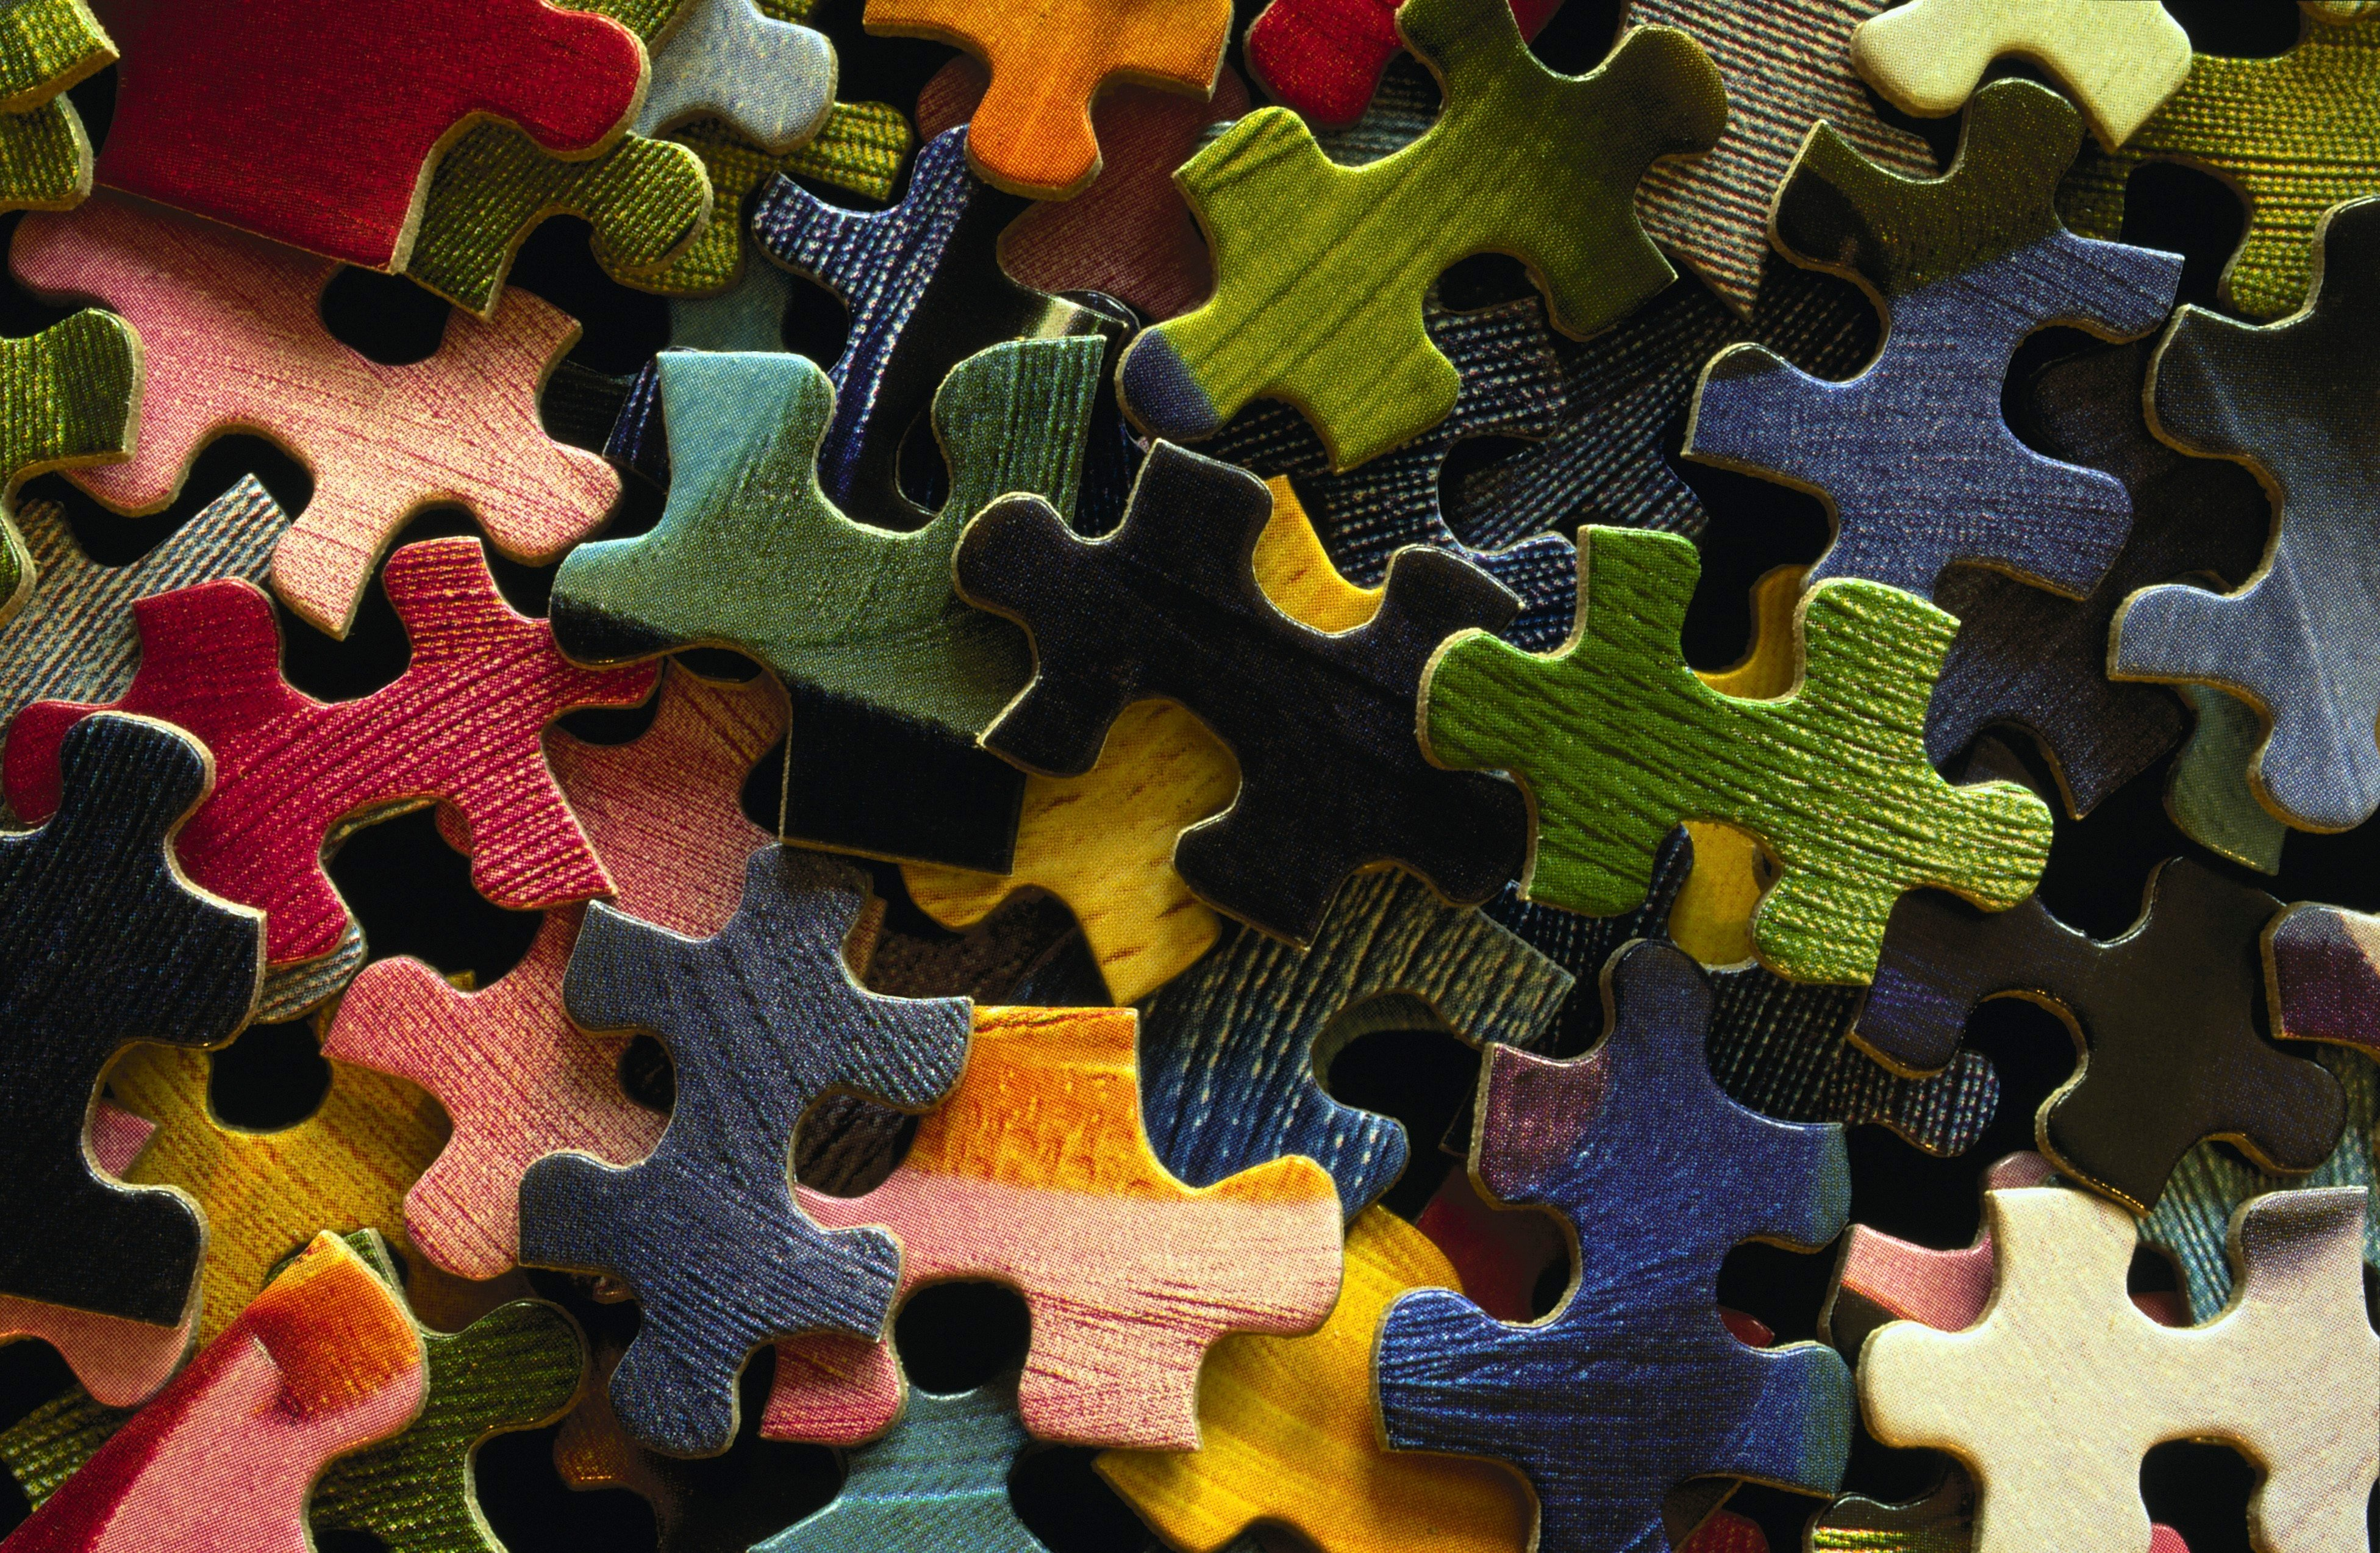 The Most Challenging Jigsaw Puzzles You Can Buy | Reader's Digest